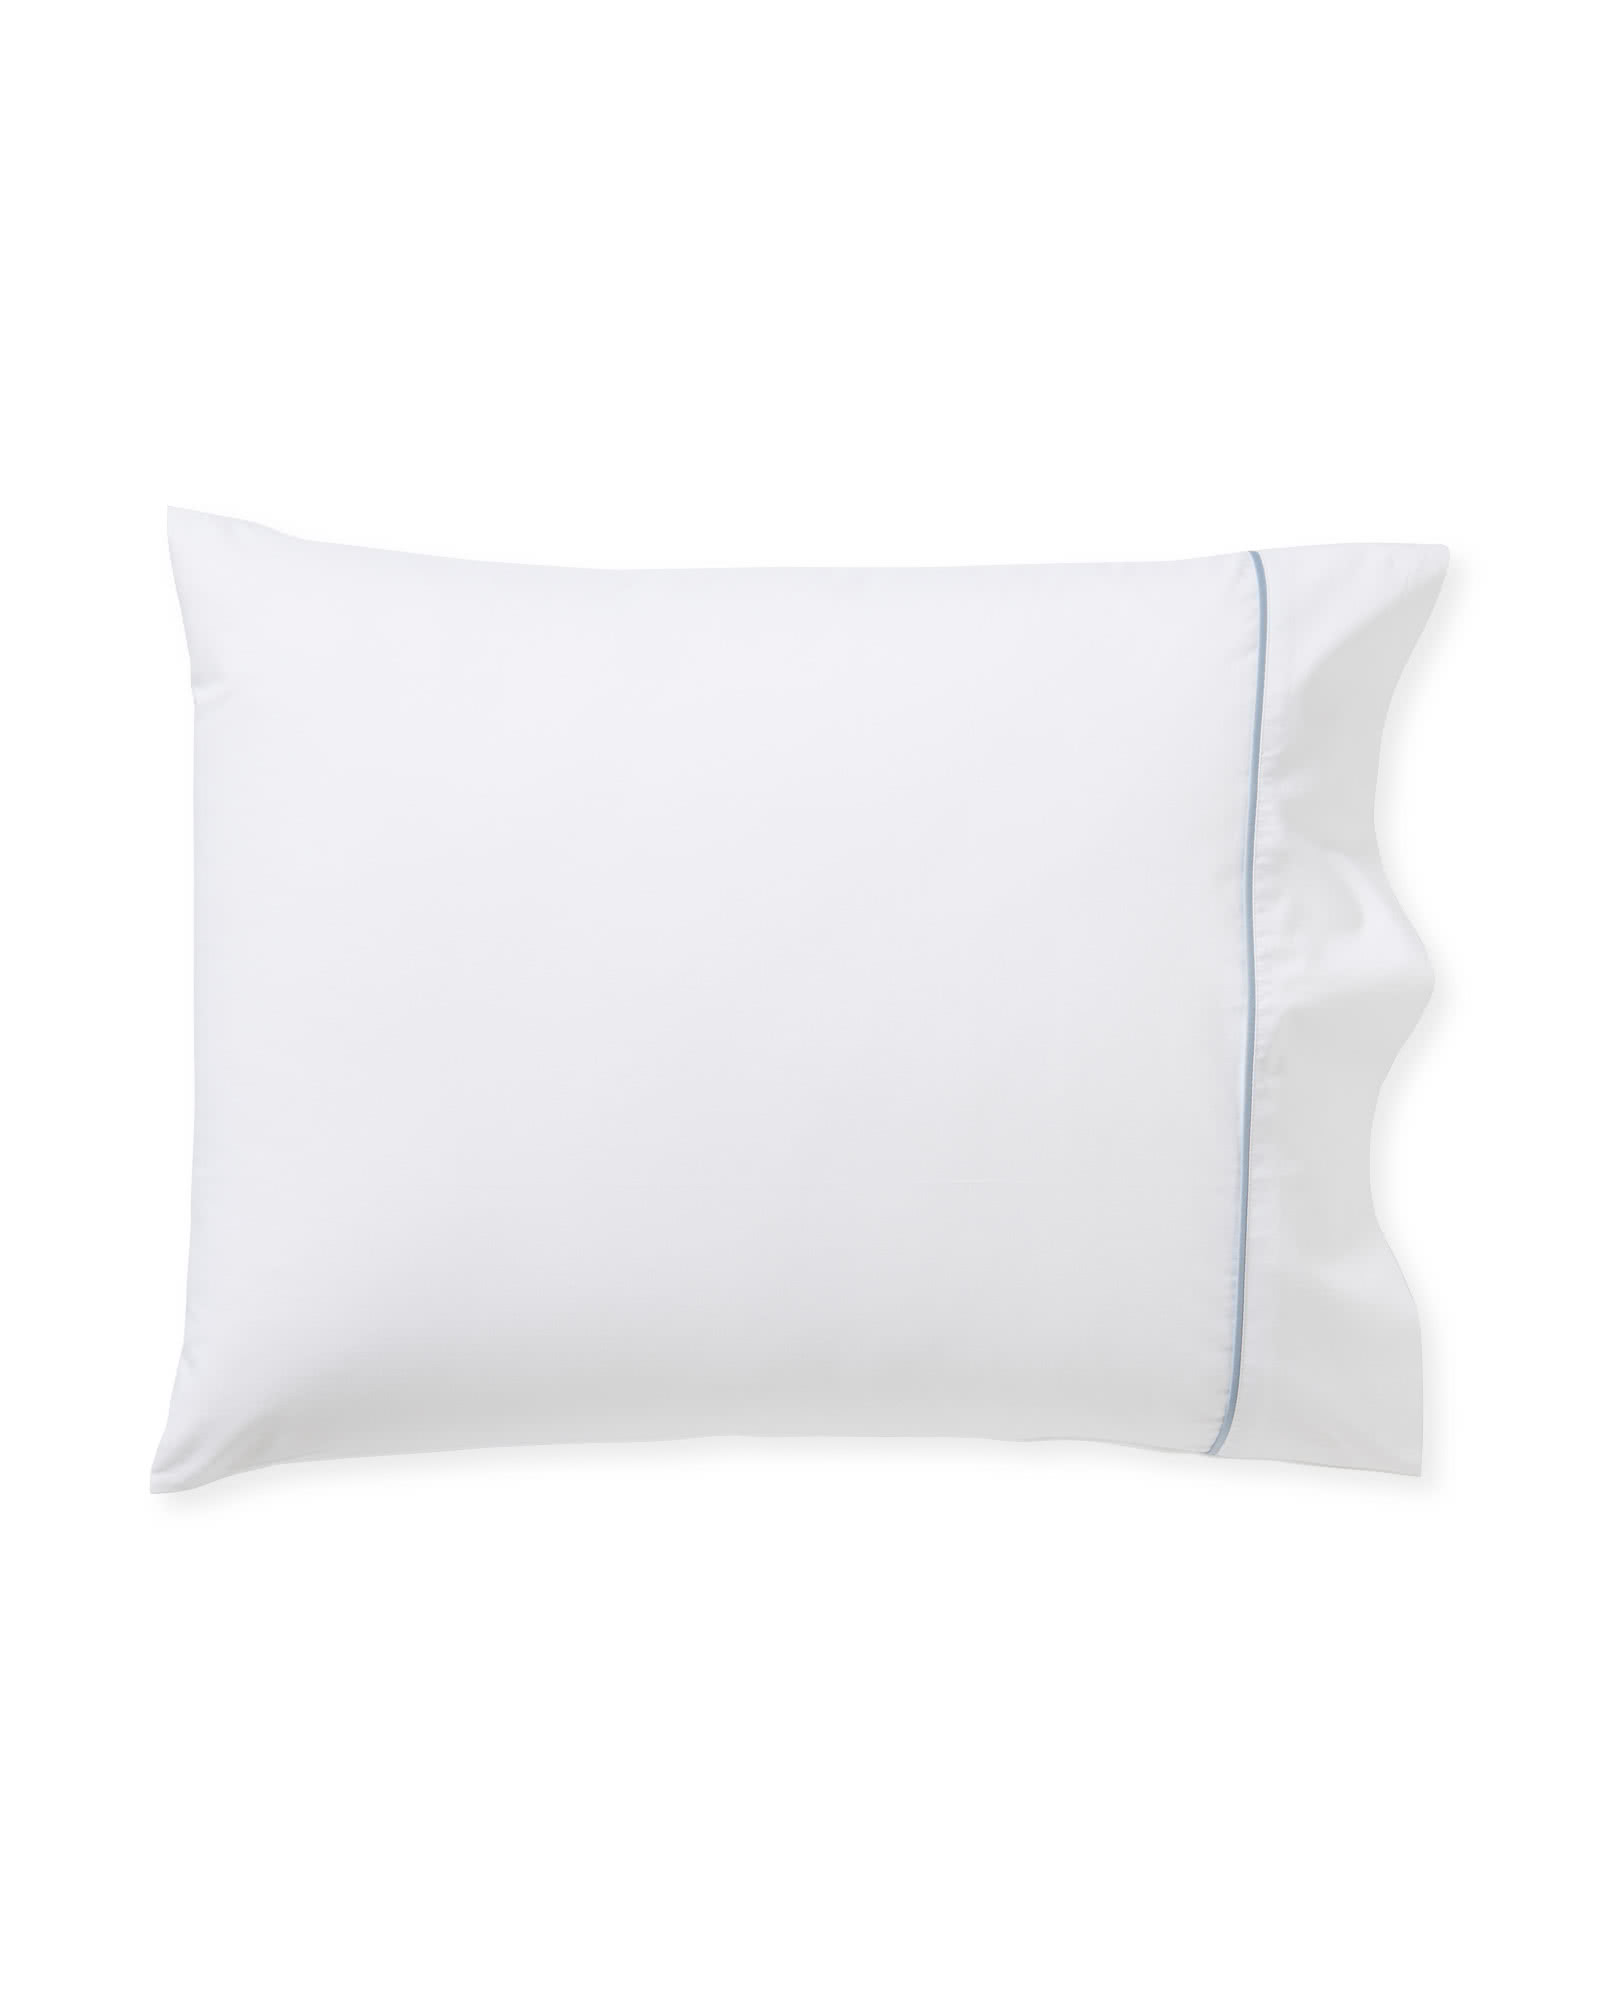 Beach Club Pillowcases (Extra Set of 2), Coastal Blue